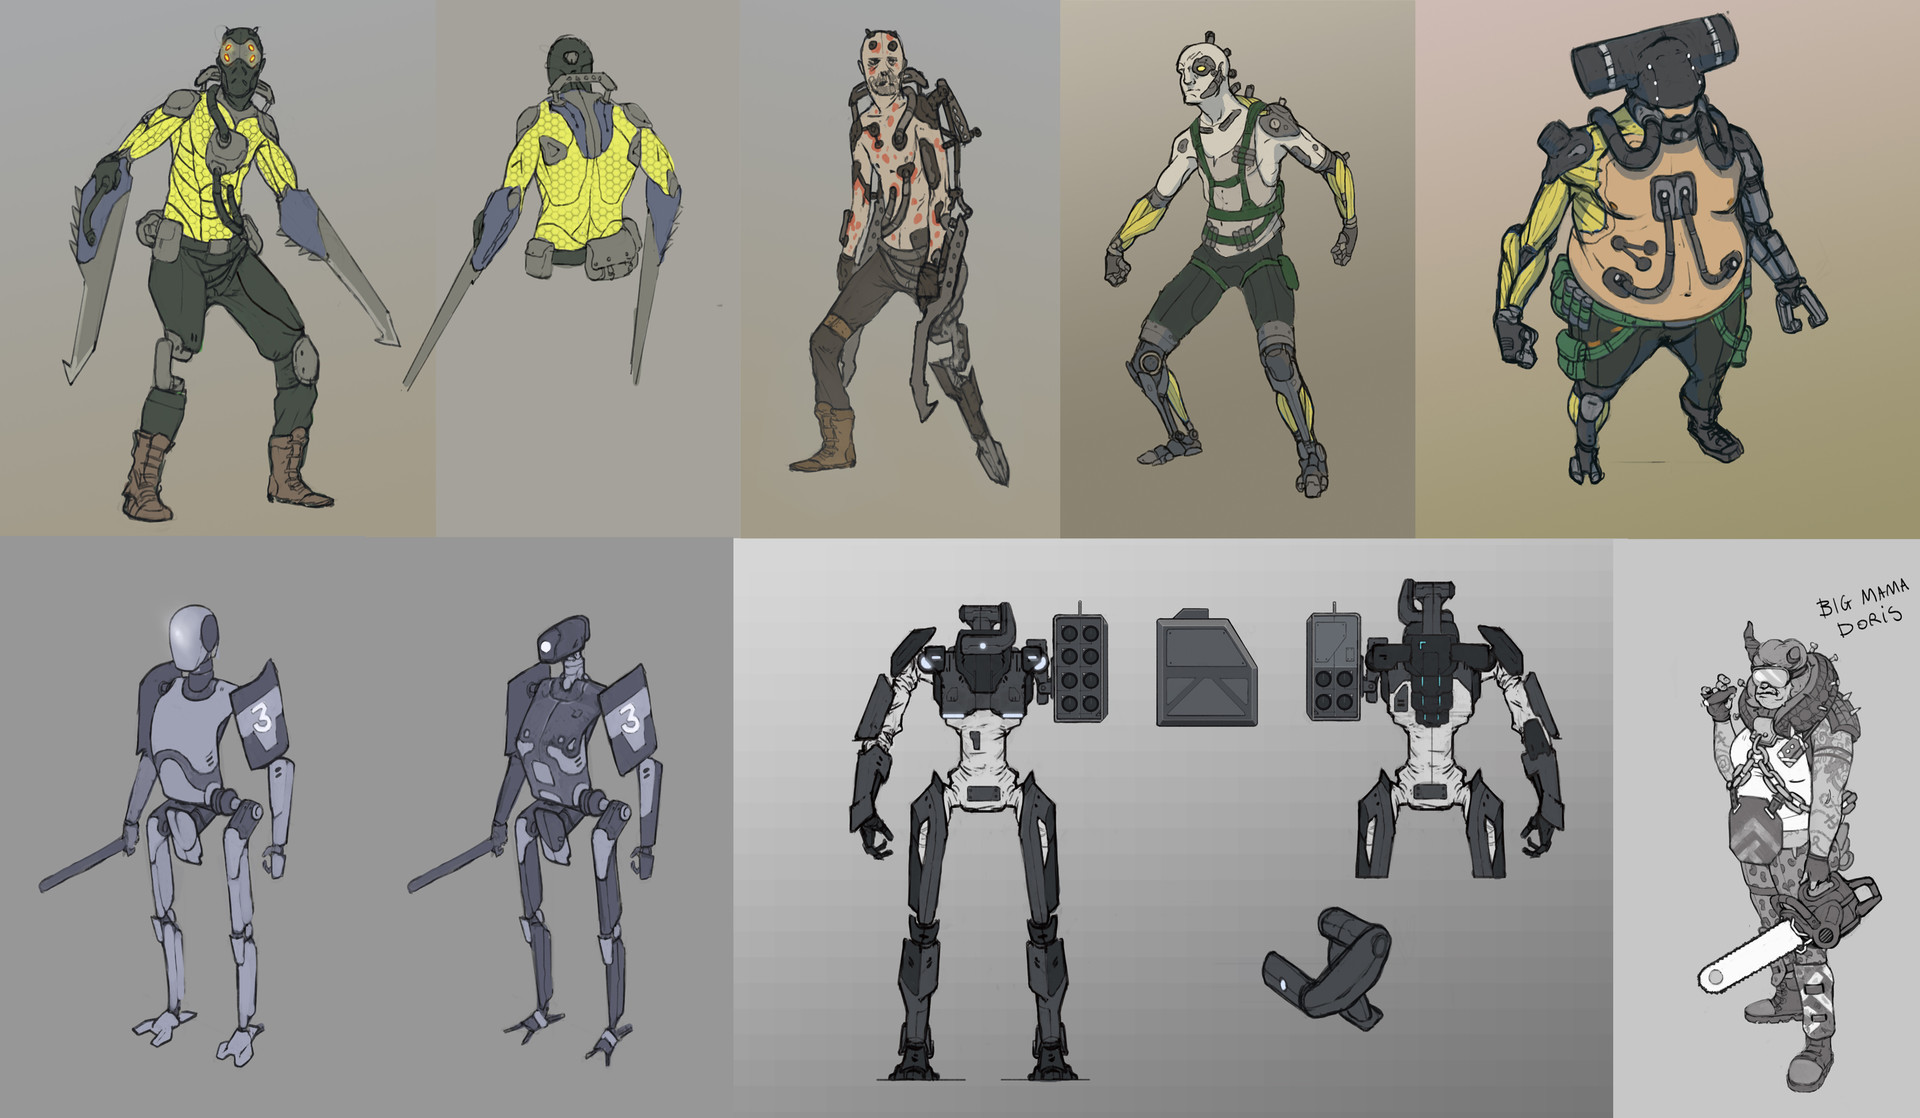 West clendinning sro characterconcepts 02